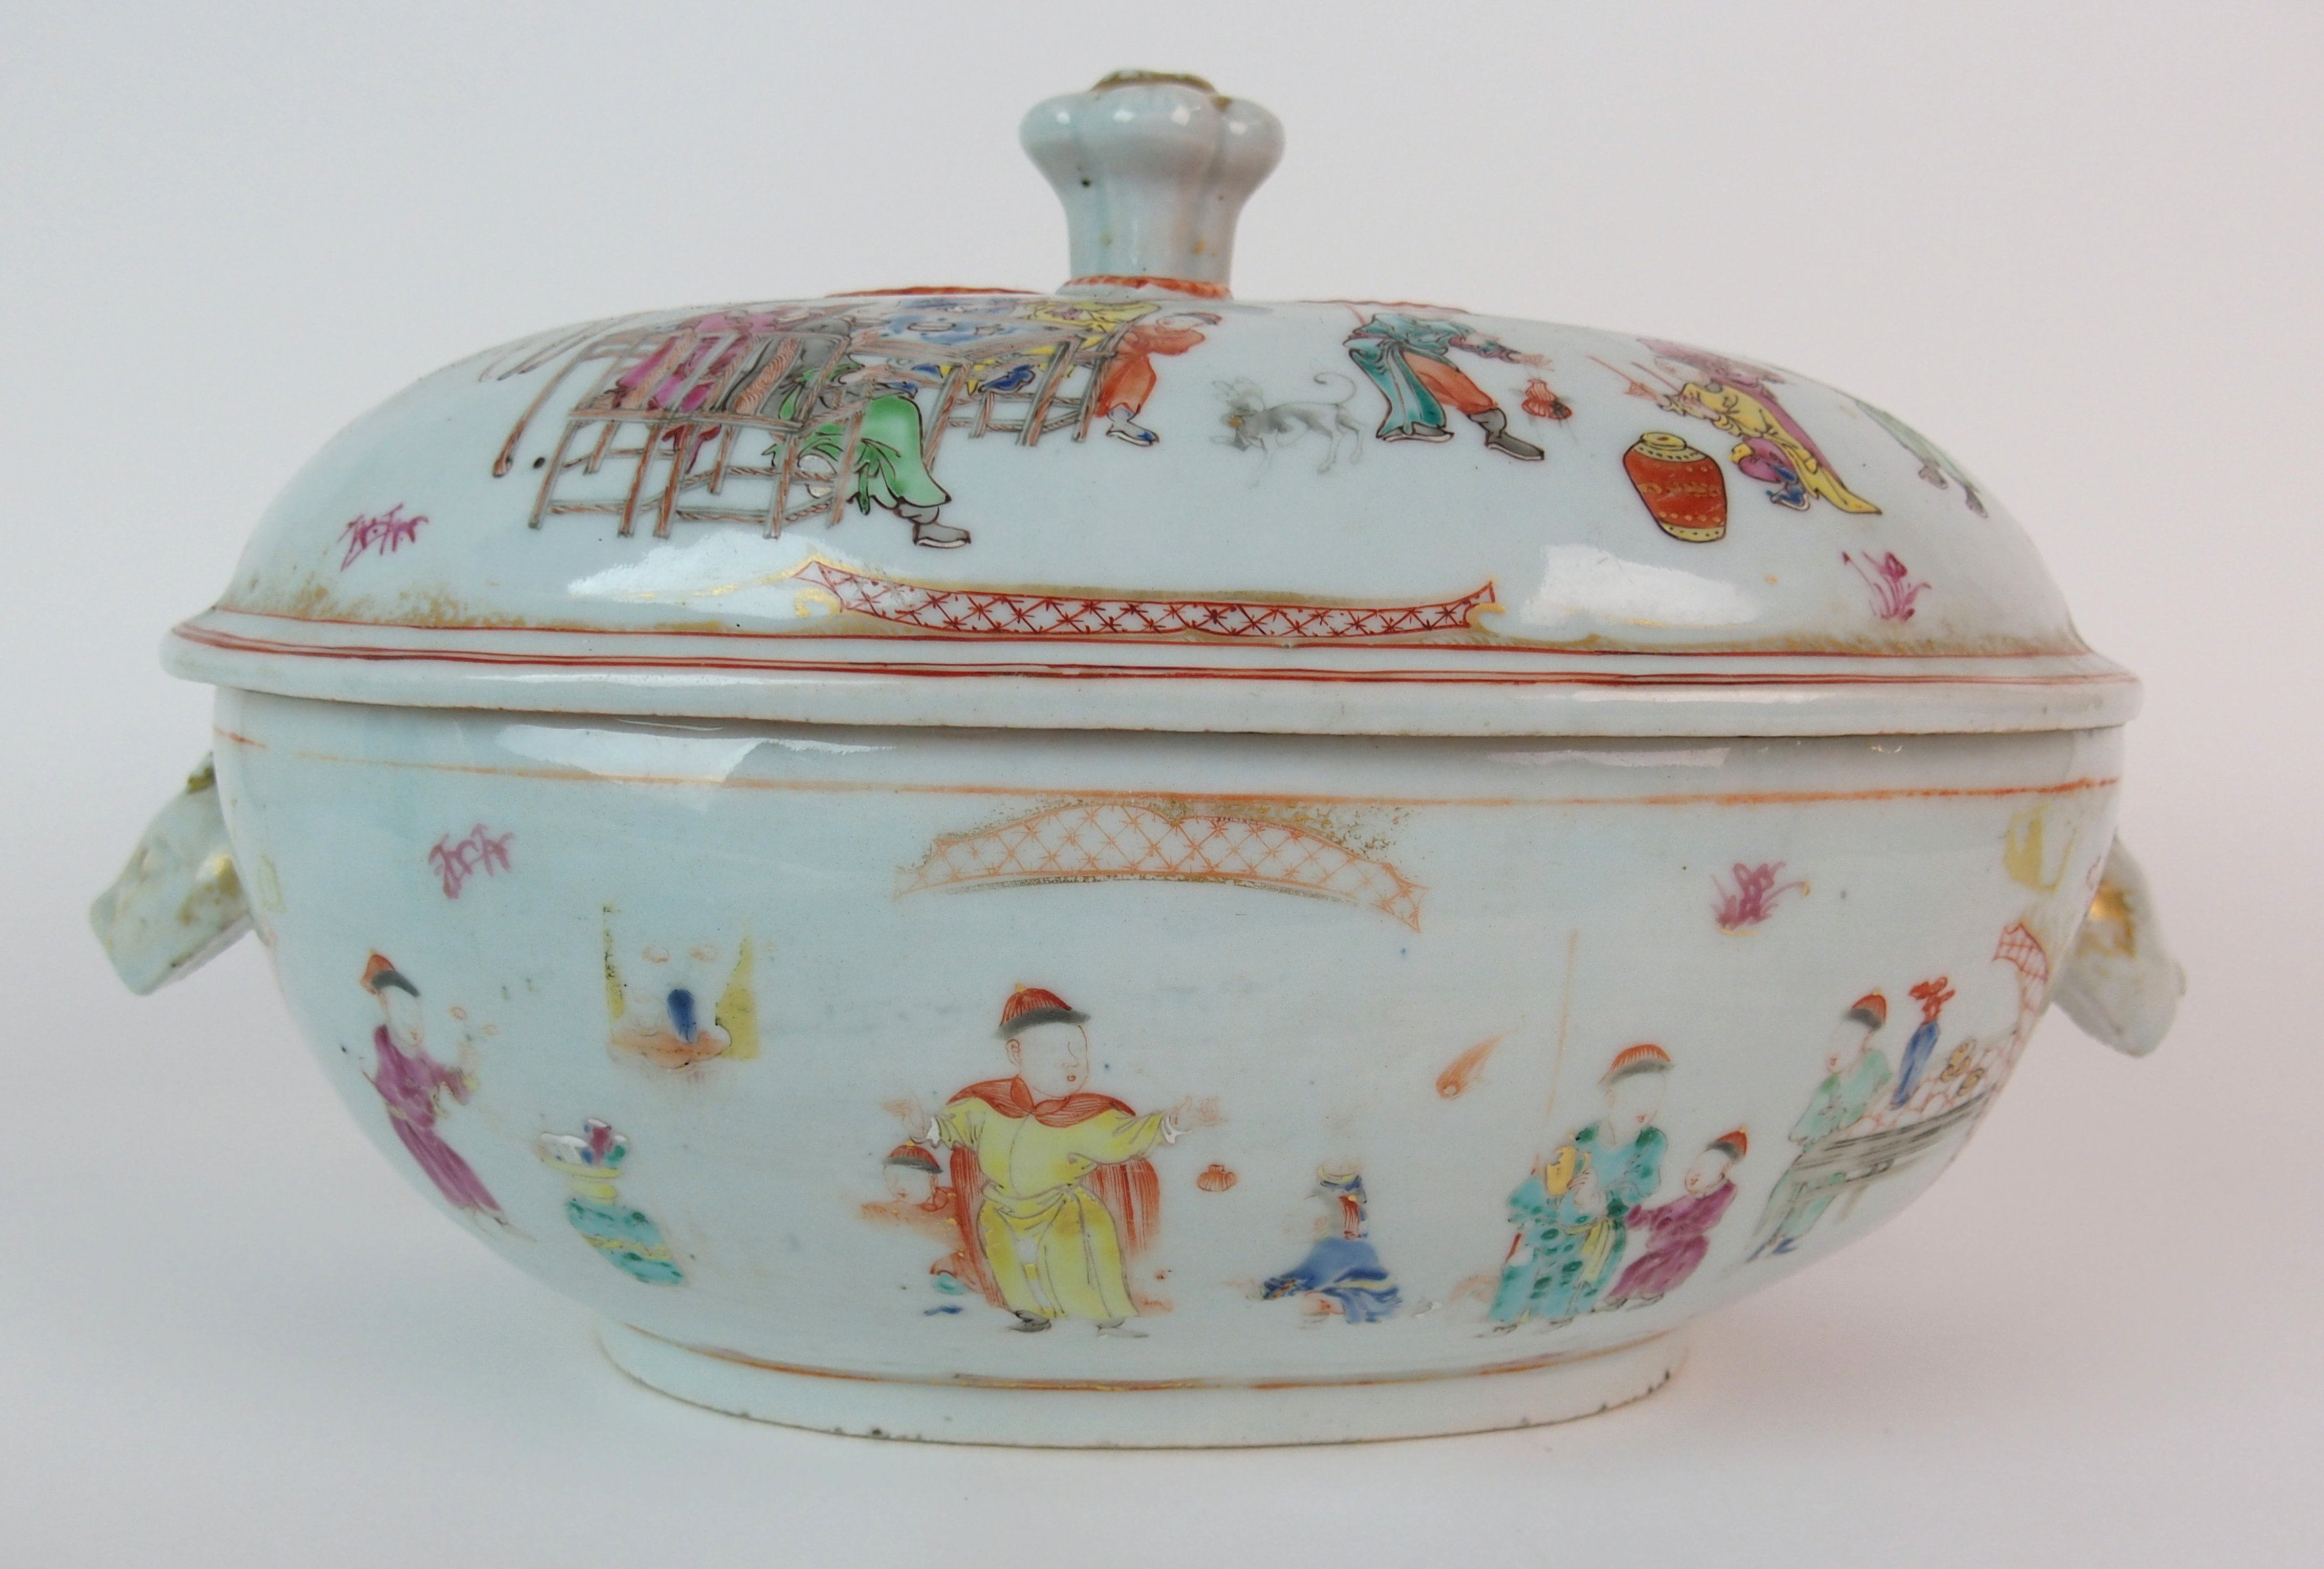 A Chinese export oval soup tureen, cover and stand painted with numerous figures beside tables, p